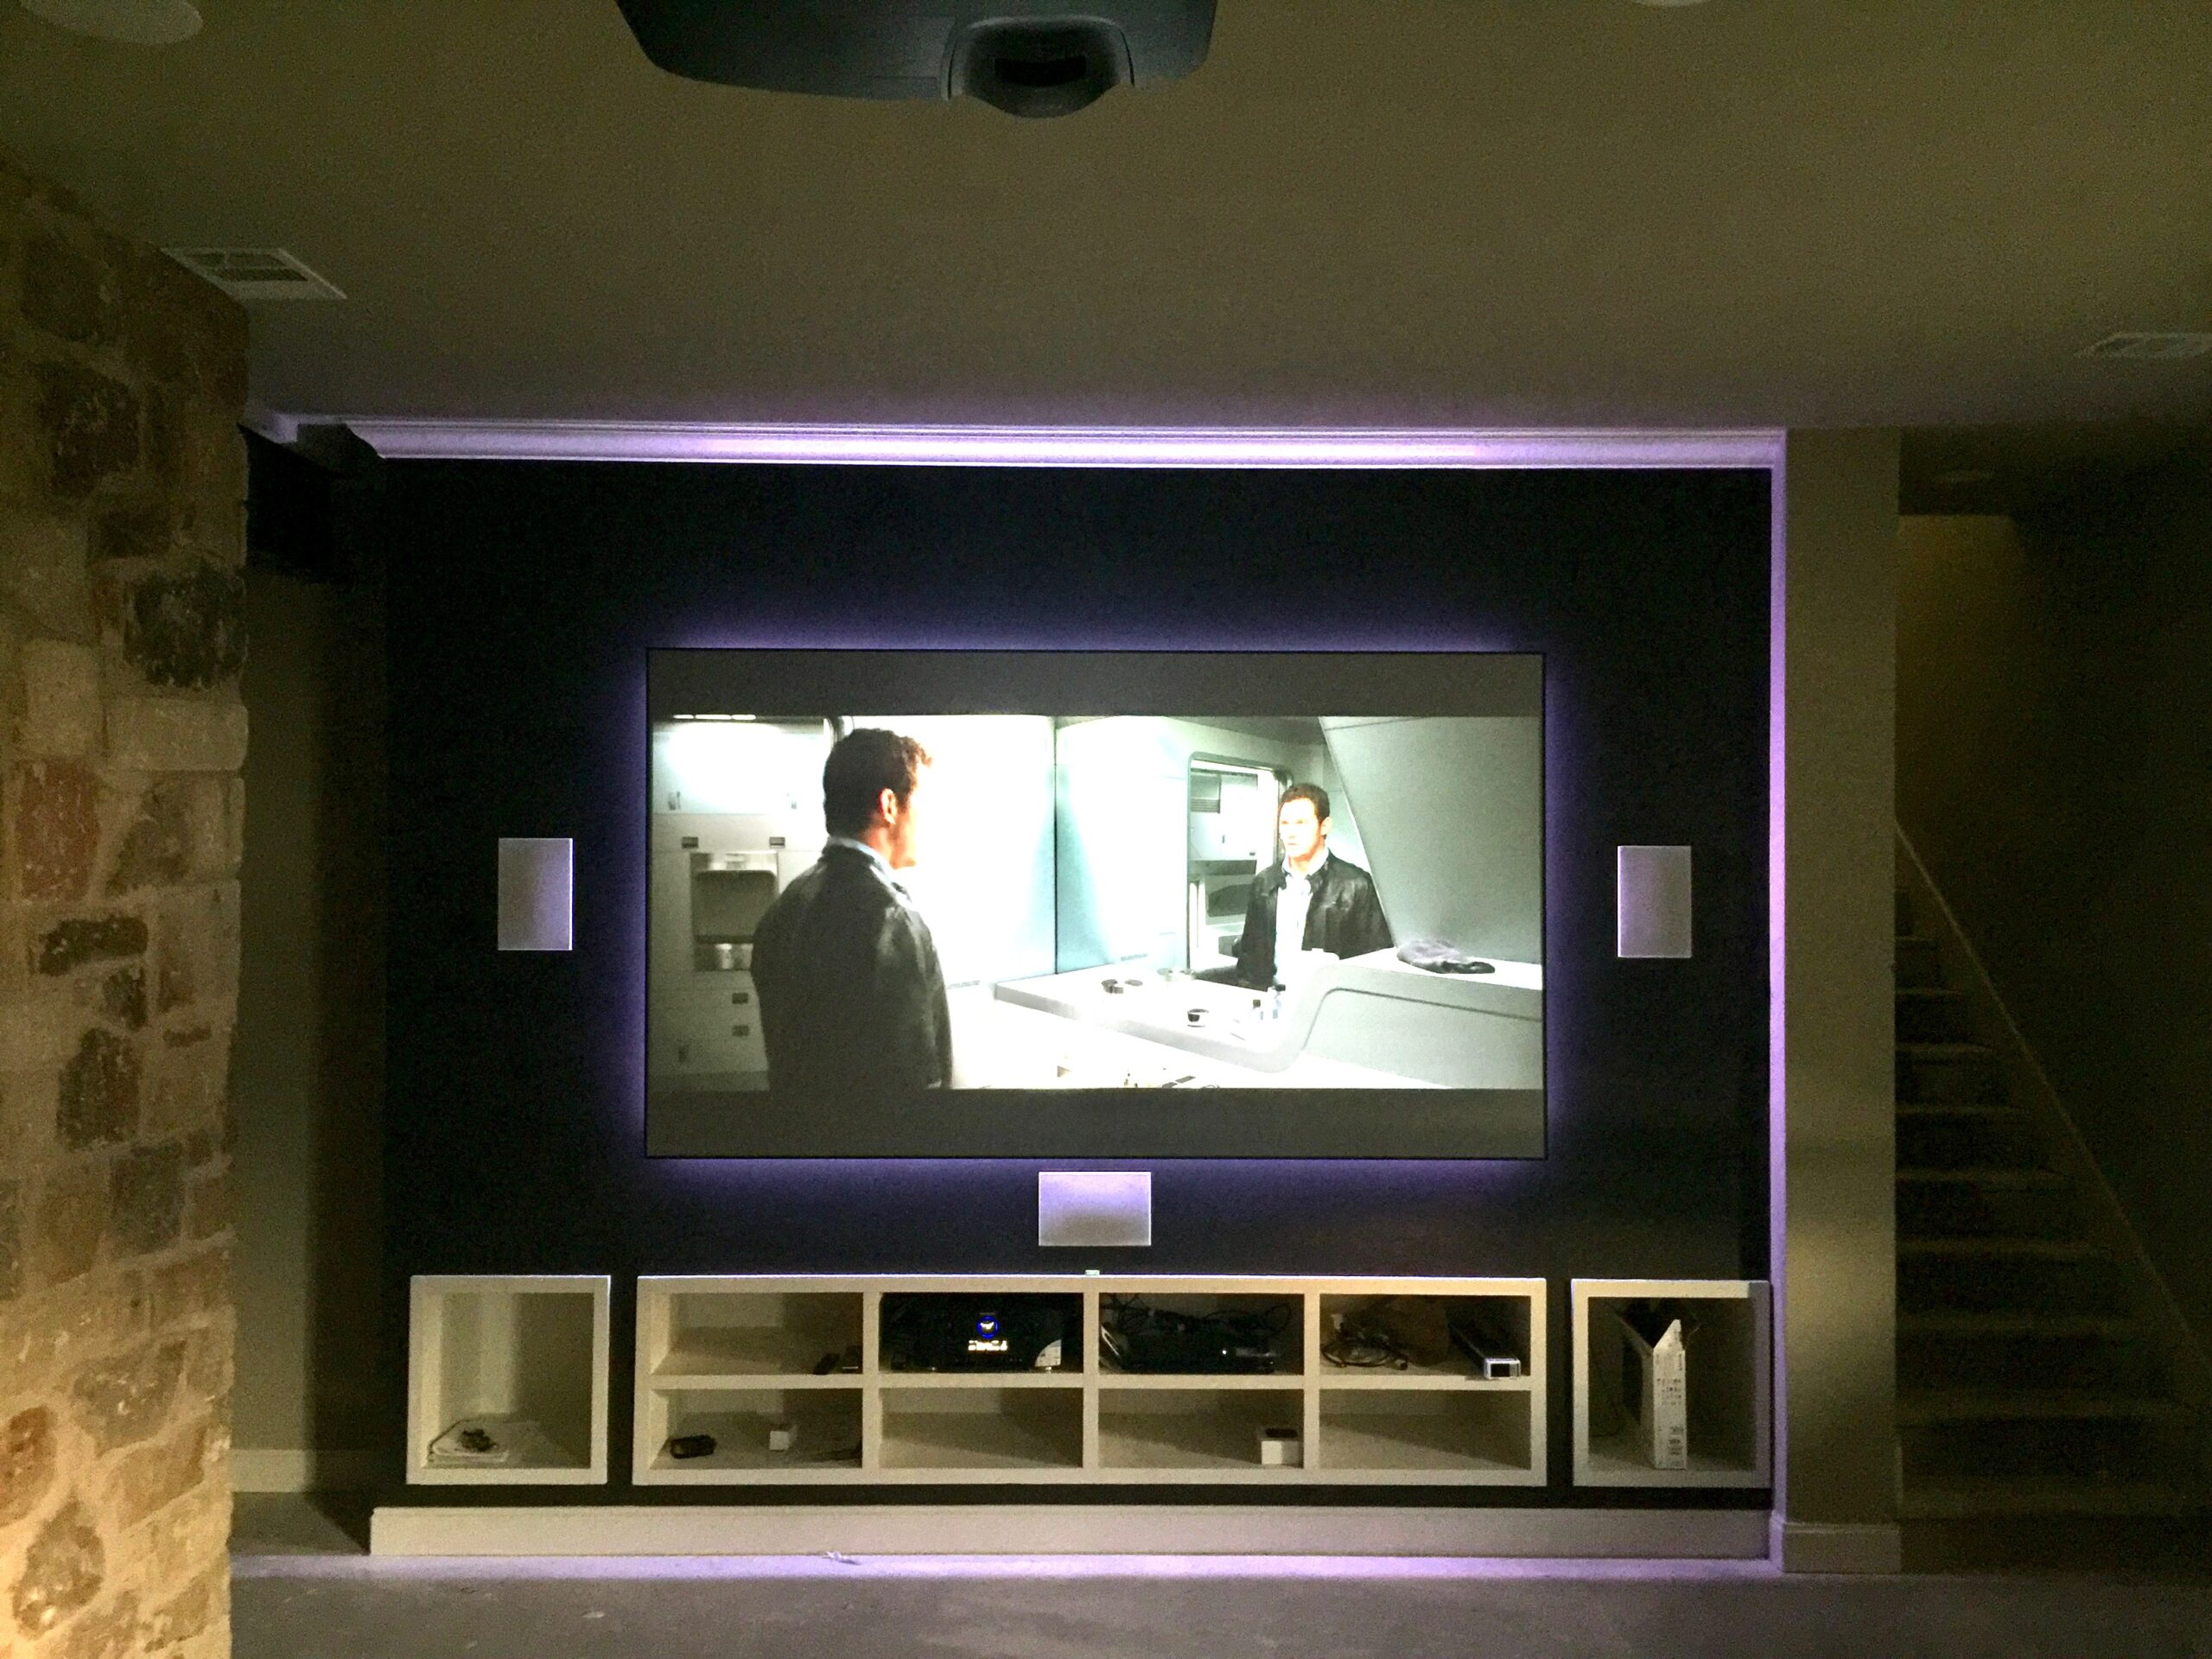 Home theater room with short throw laser projection, hidden pristine sound system and interior theater lighting